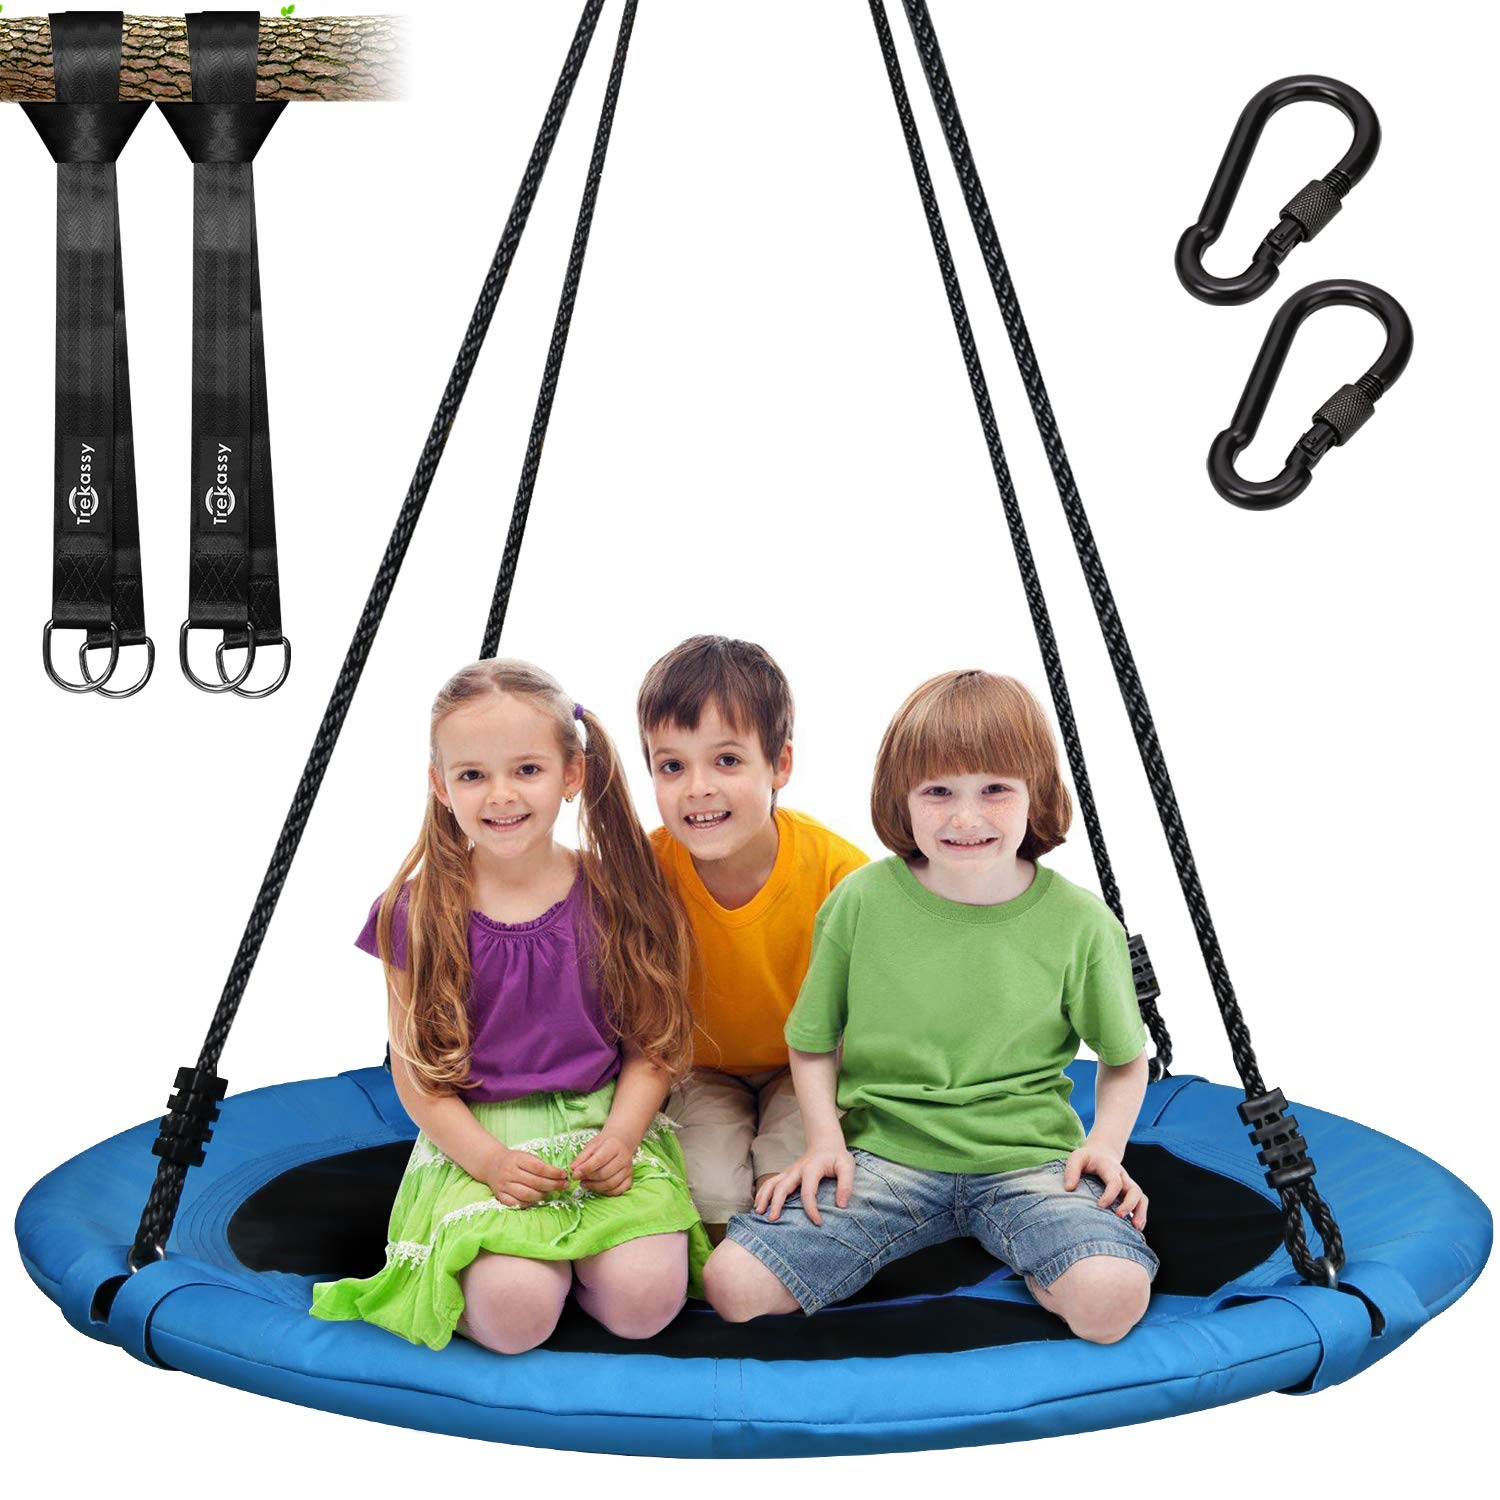 Trekassy 700lb Saucer Tree Swing for Kids Adults 40 Inch 900D Oxford Waterproof Frame with 2 Hanging Straps by Trekassy (Image #1)